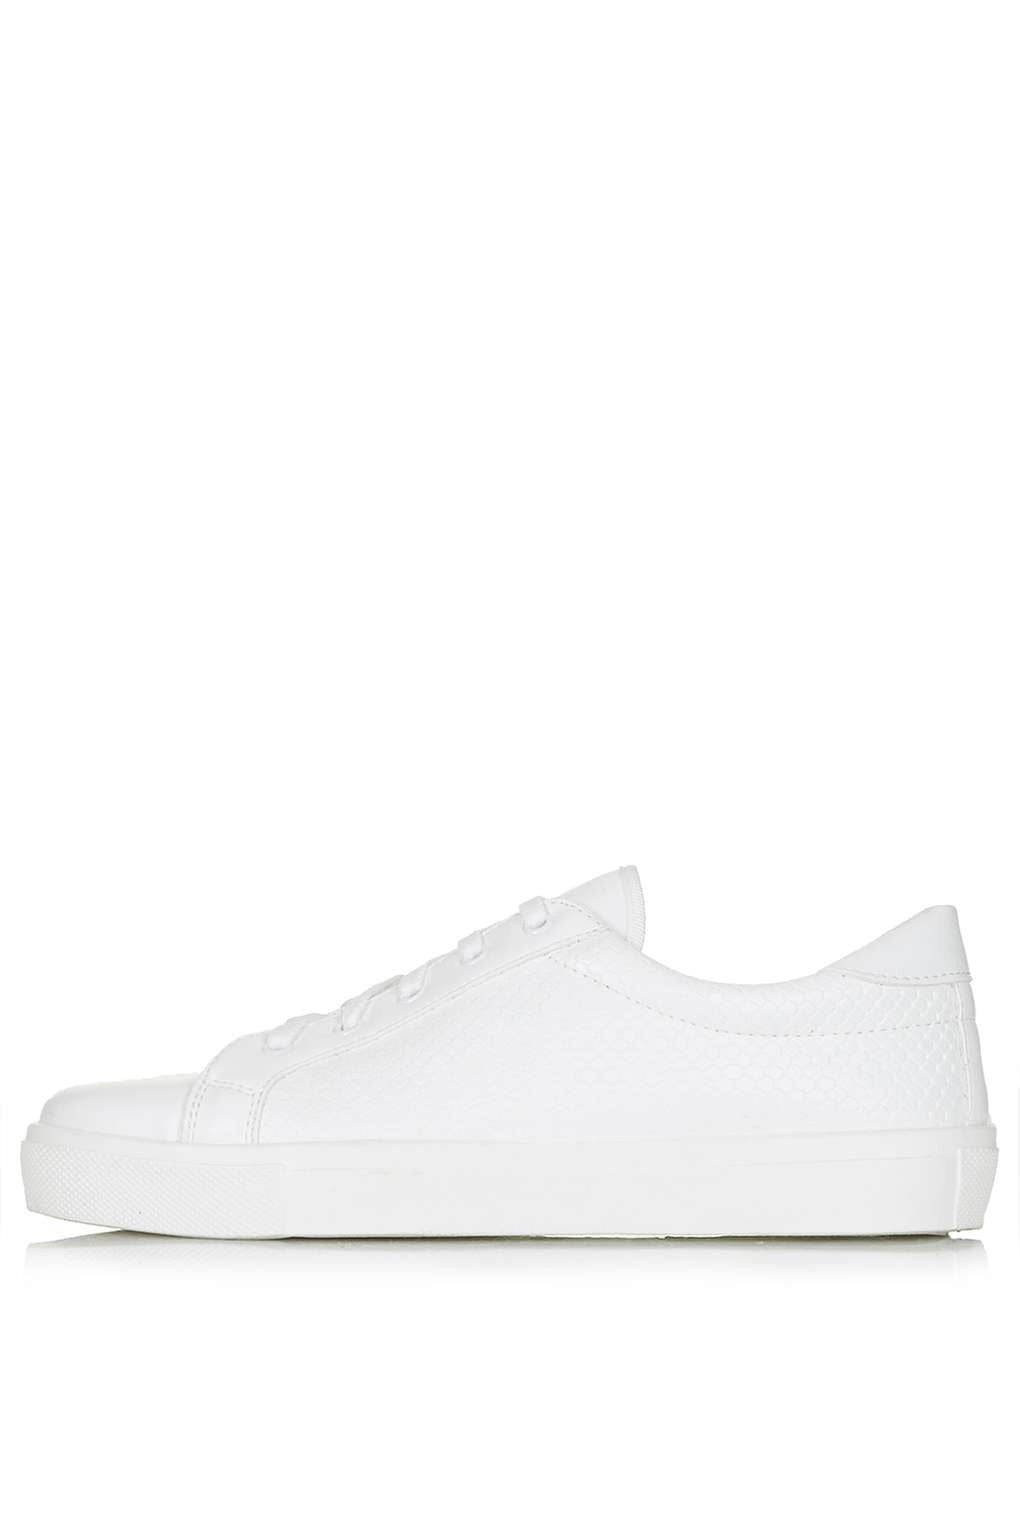 TopShopCOPENHAGEN Lace-Up Sneakers